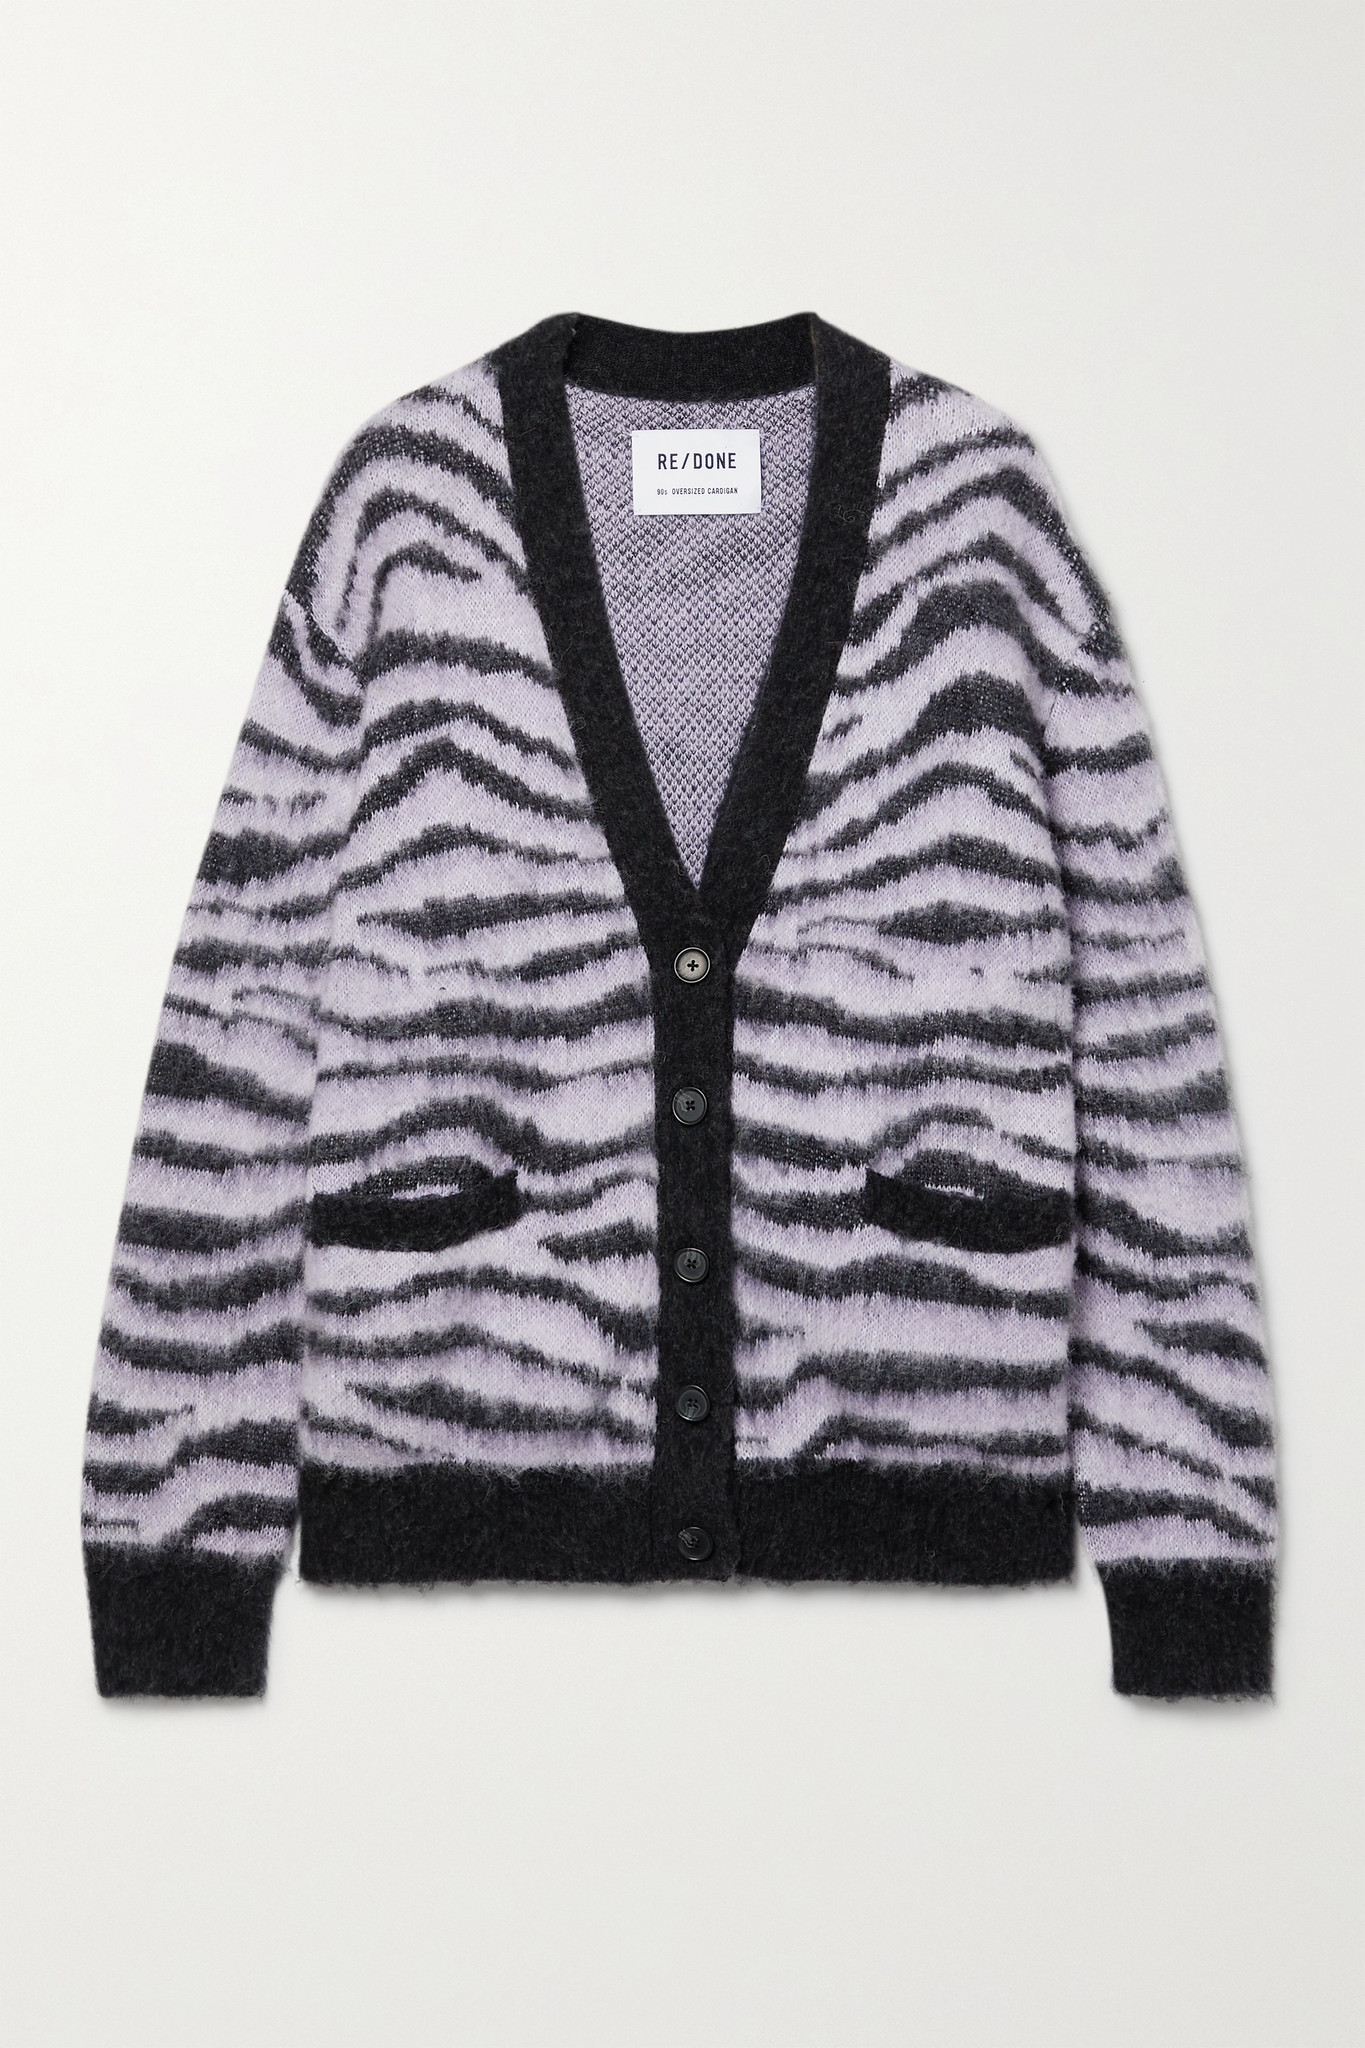 RE/DONE - 90s Tiger-intarsia Cardigan - Purple - small